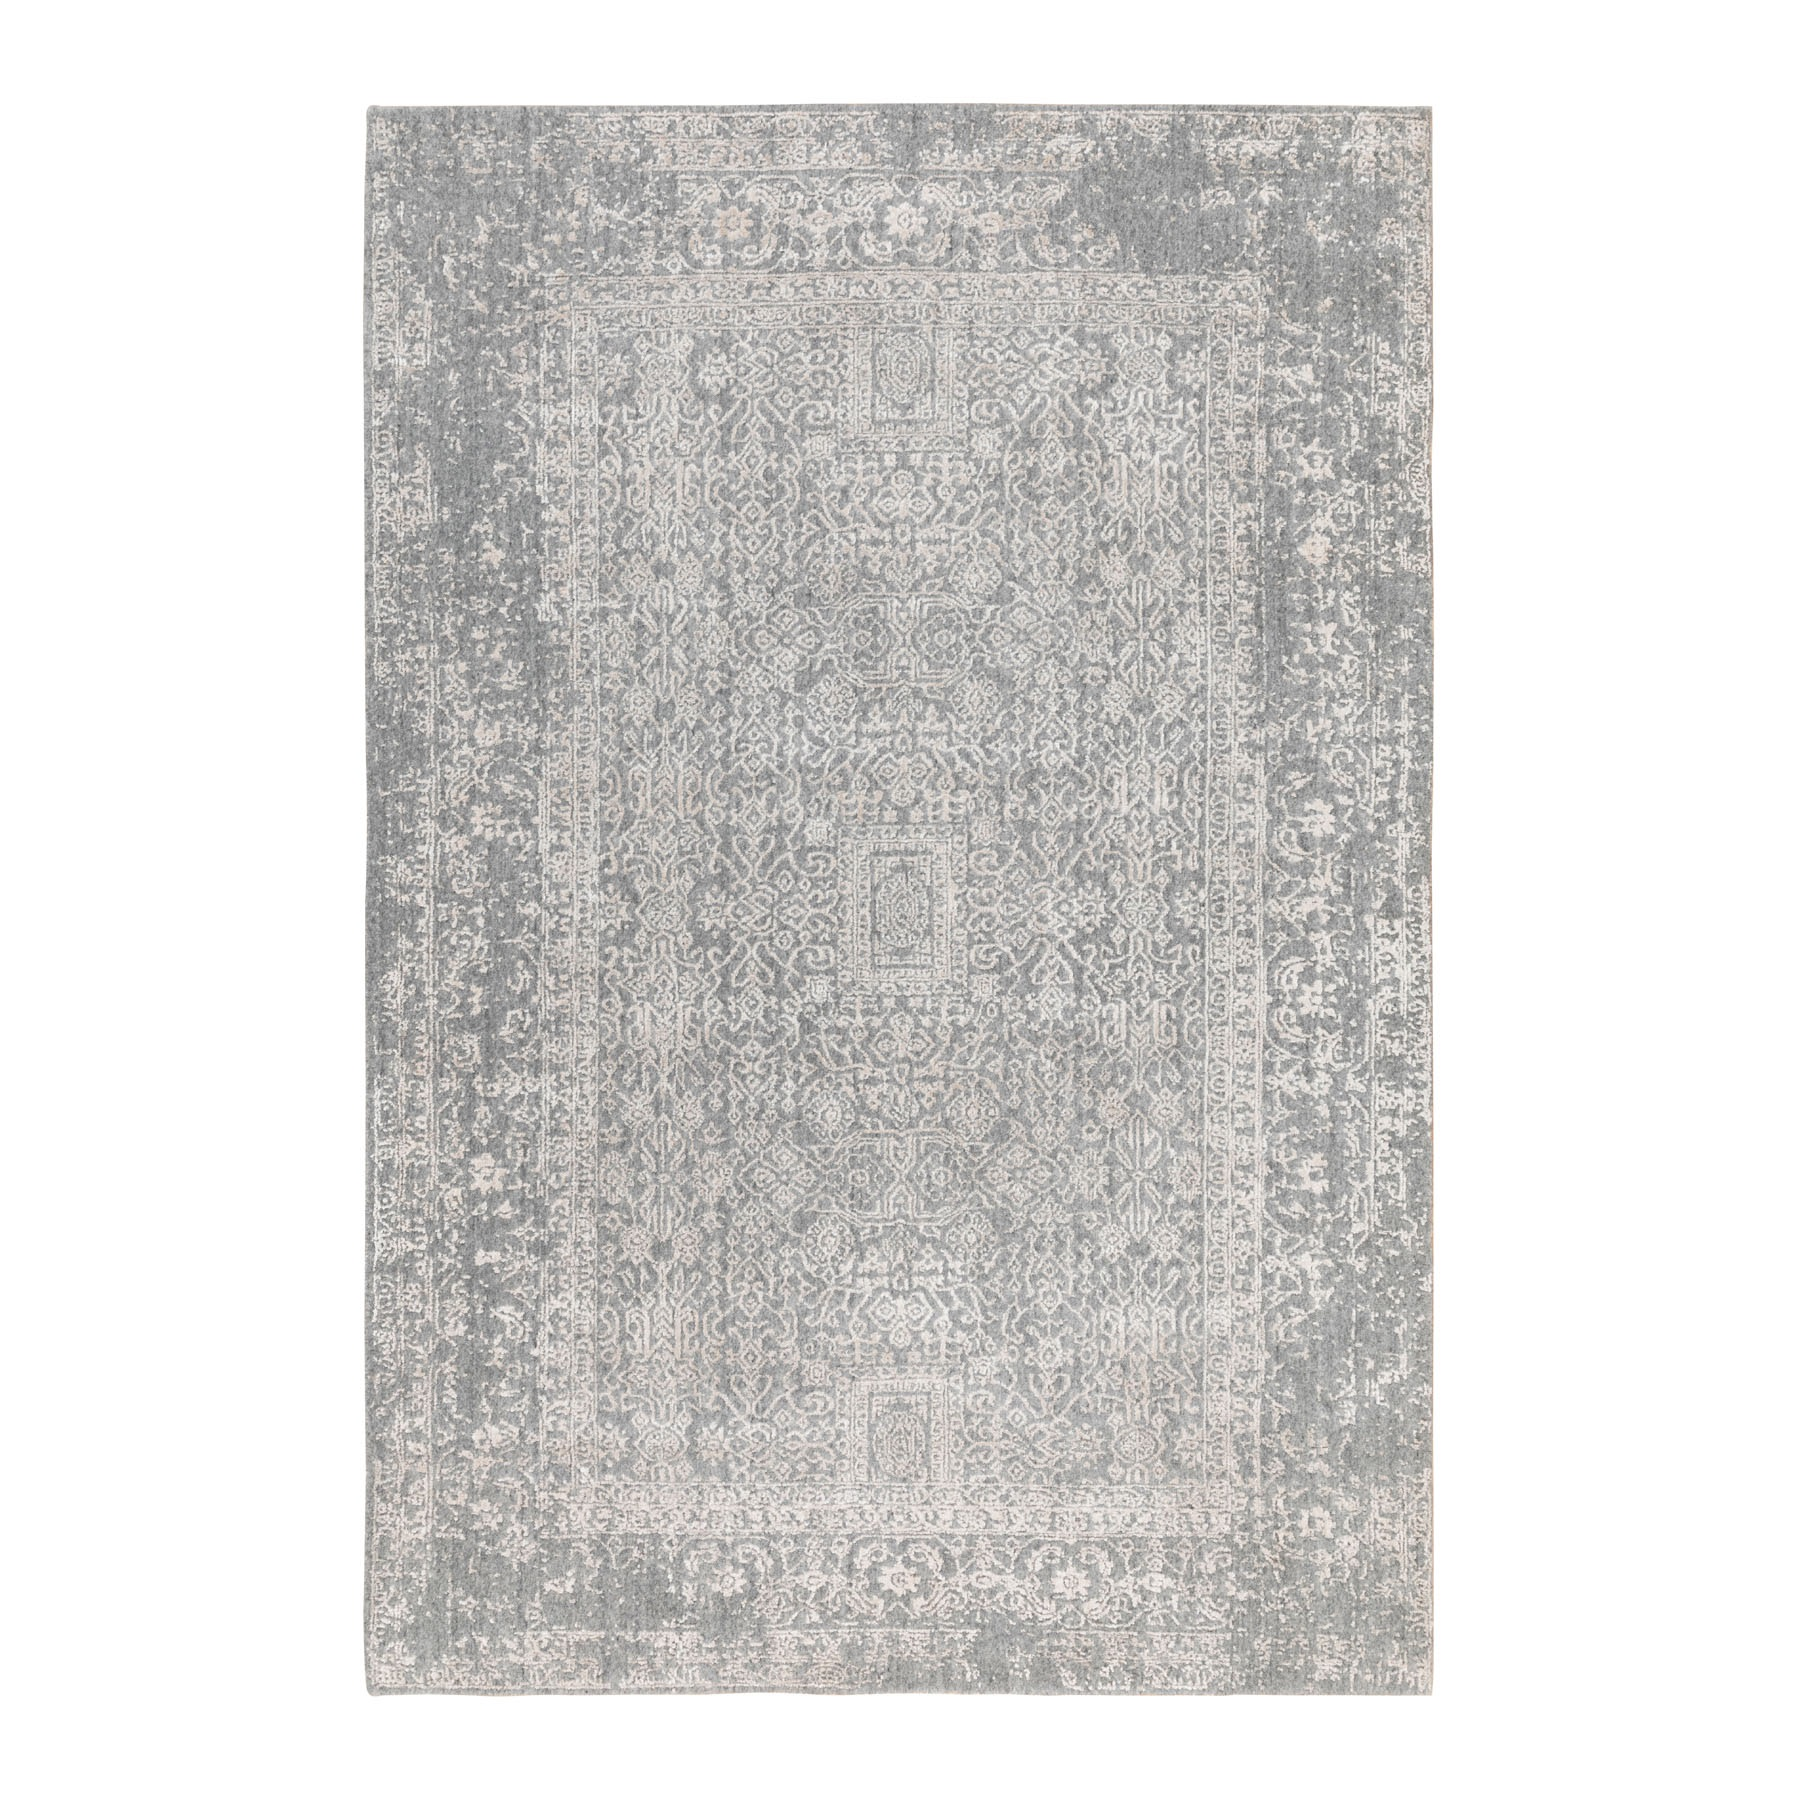 Mid Century Modern Collection Hand Loomed Grey Rug No: 01116818